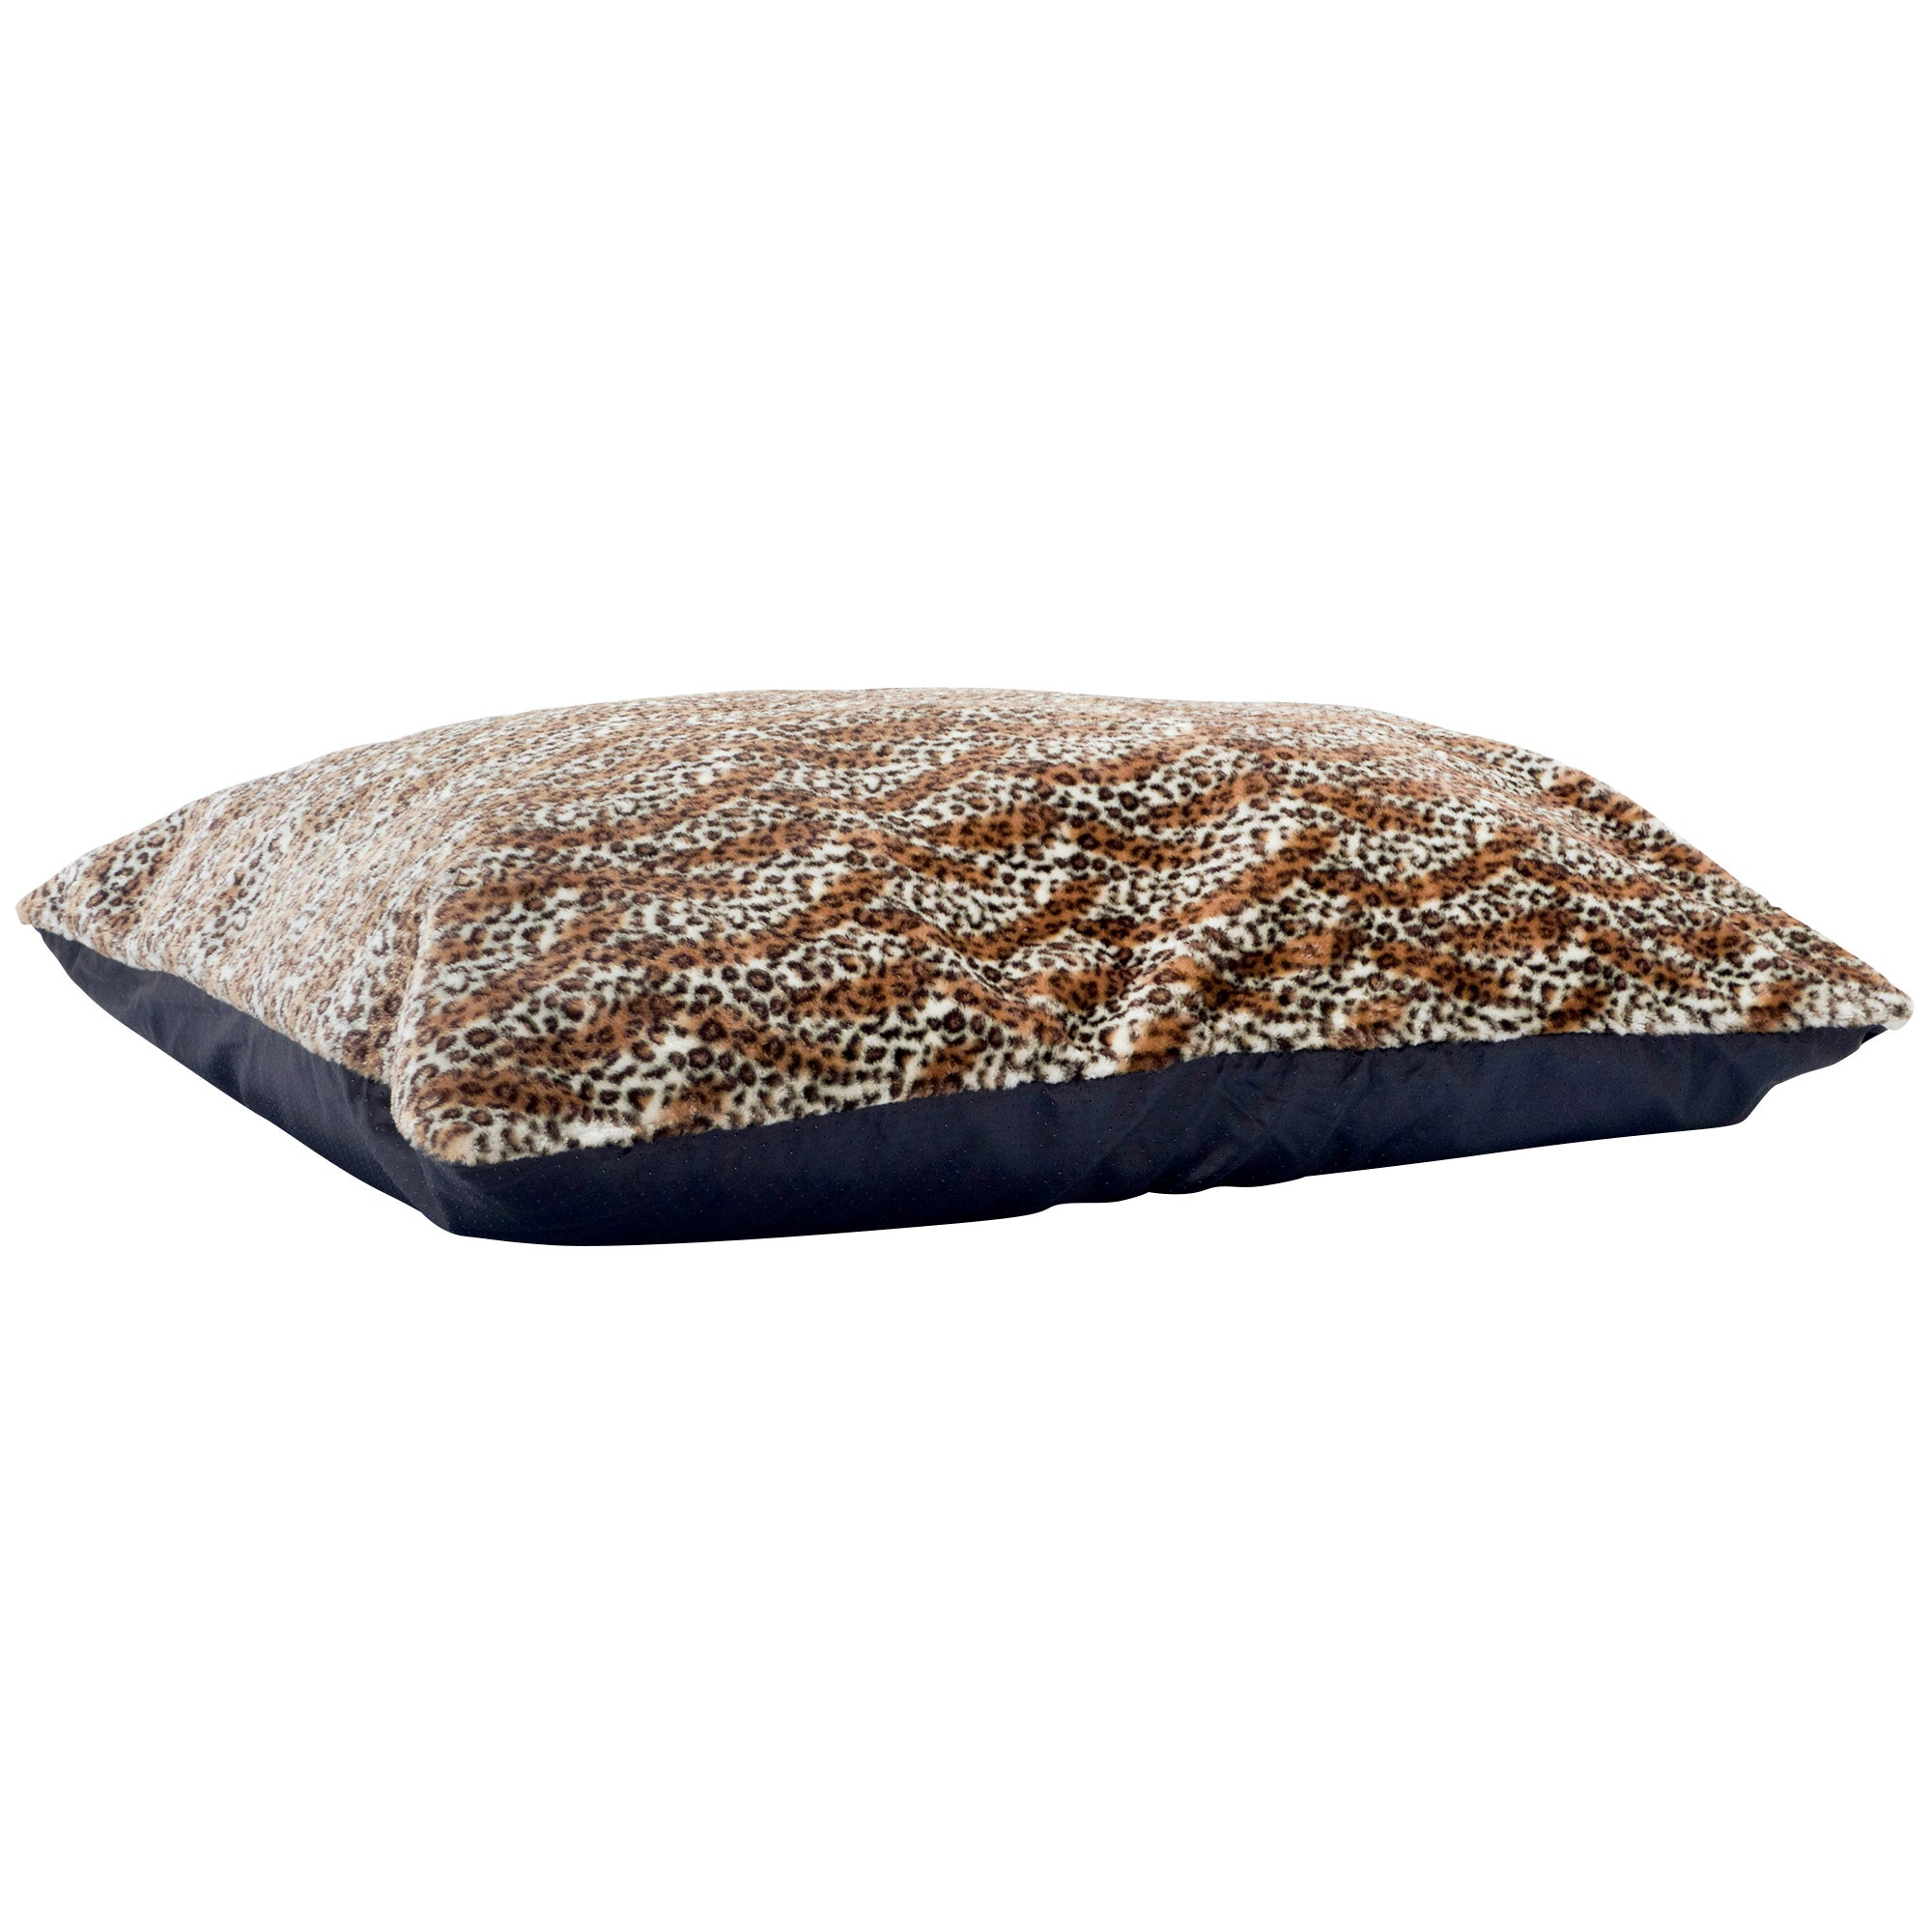 Leopard Pet Cushion